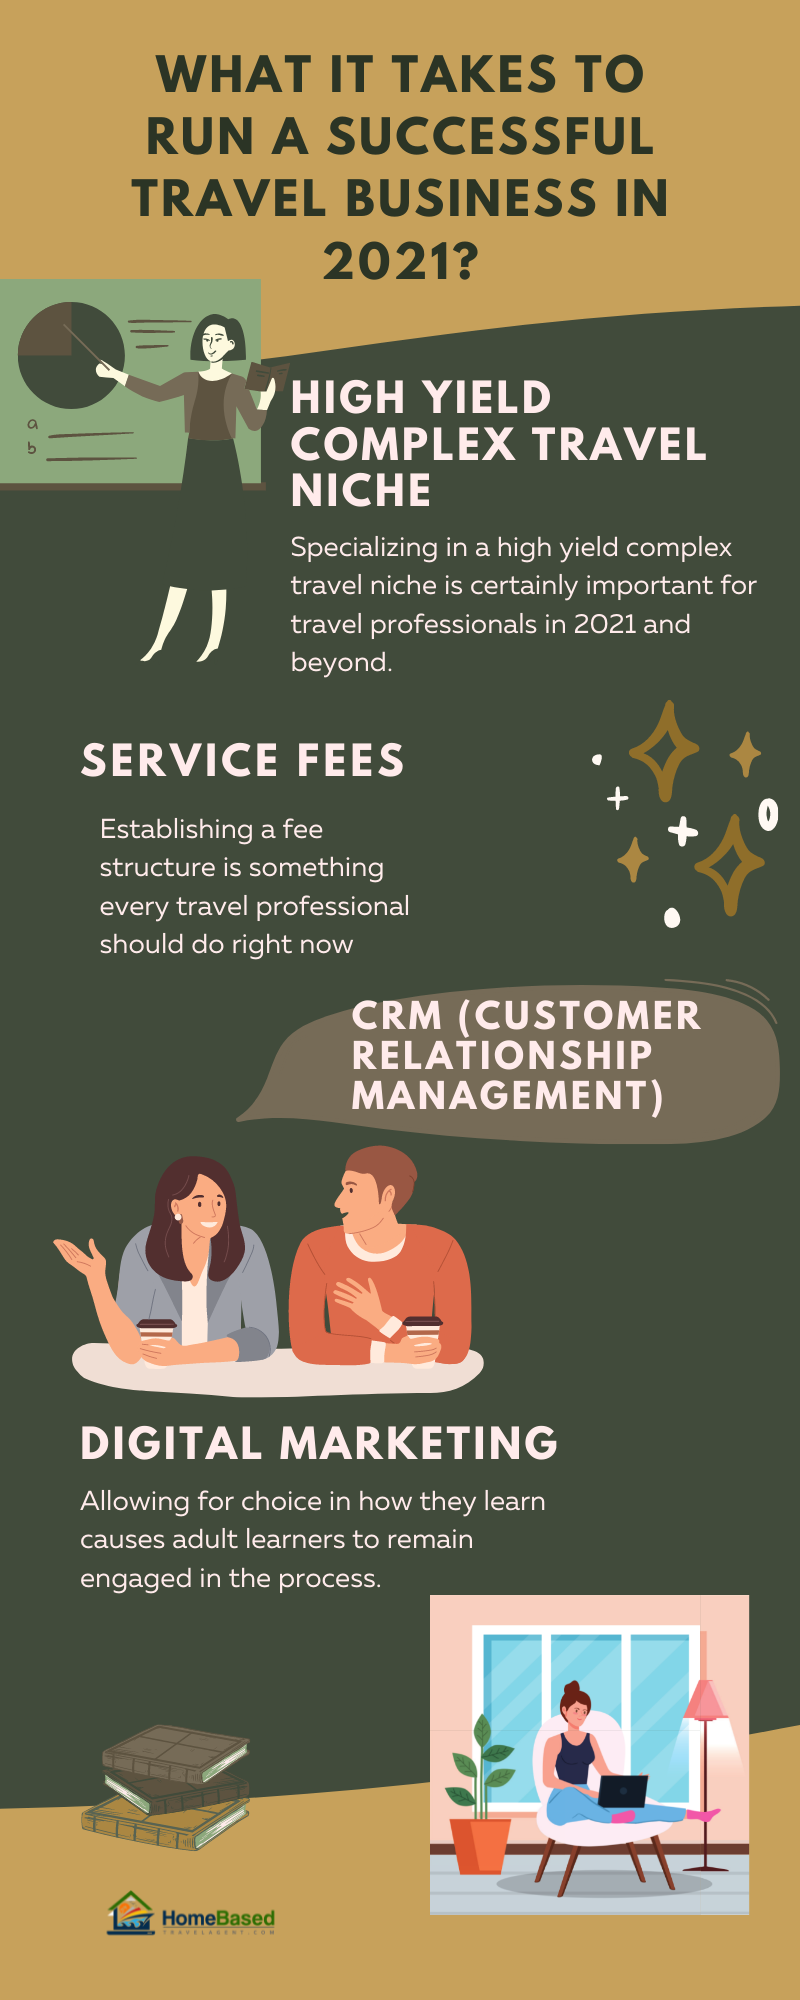 What it Takes to Run a Successful Travel Business in 2021?